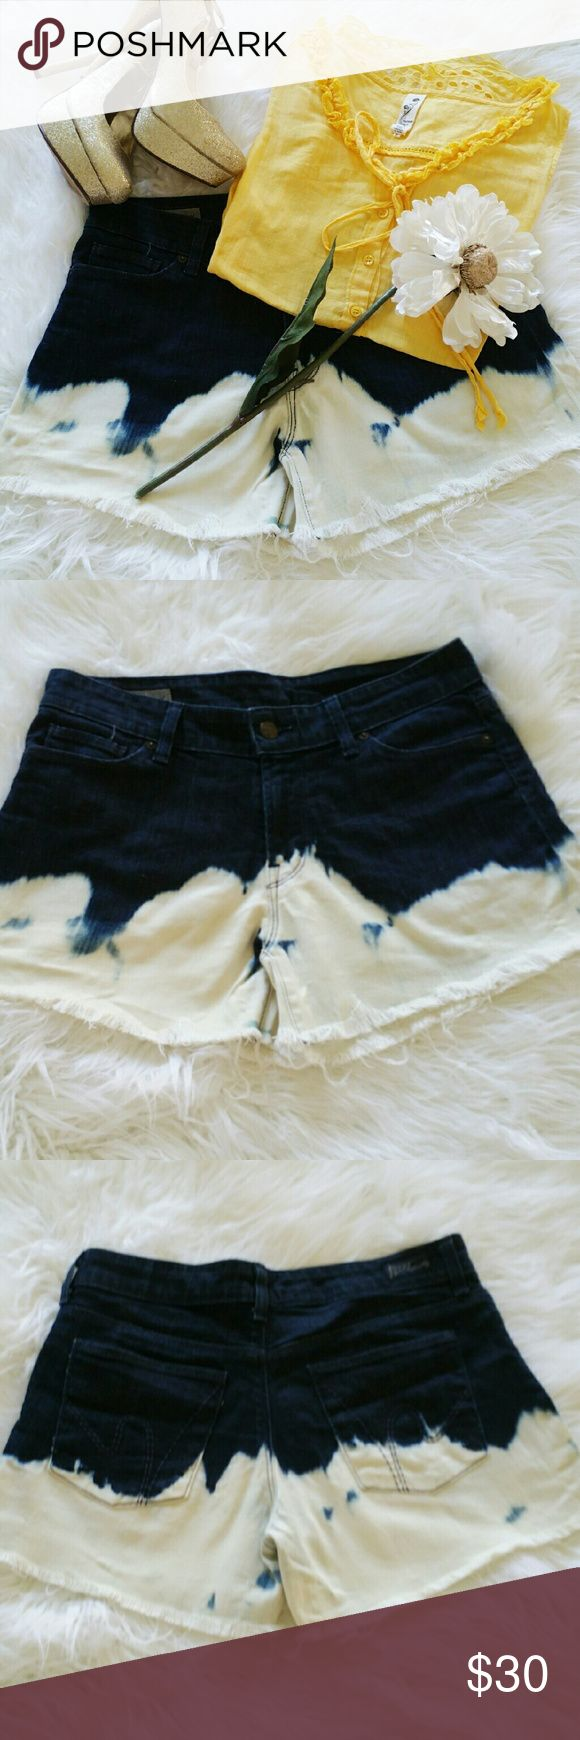 """SALE Citizens of Humanity Premium Cutoff Shorts Adorable Citizens of Humanity Premium Cutoff Daisy Duke Shorts 98% Cotton 2% Elastane 13"""" from top of waist to bottom of the shorts Citizens of Humanity Shorts"""